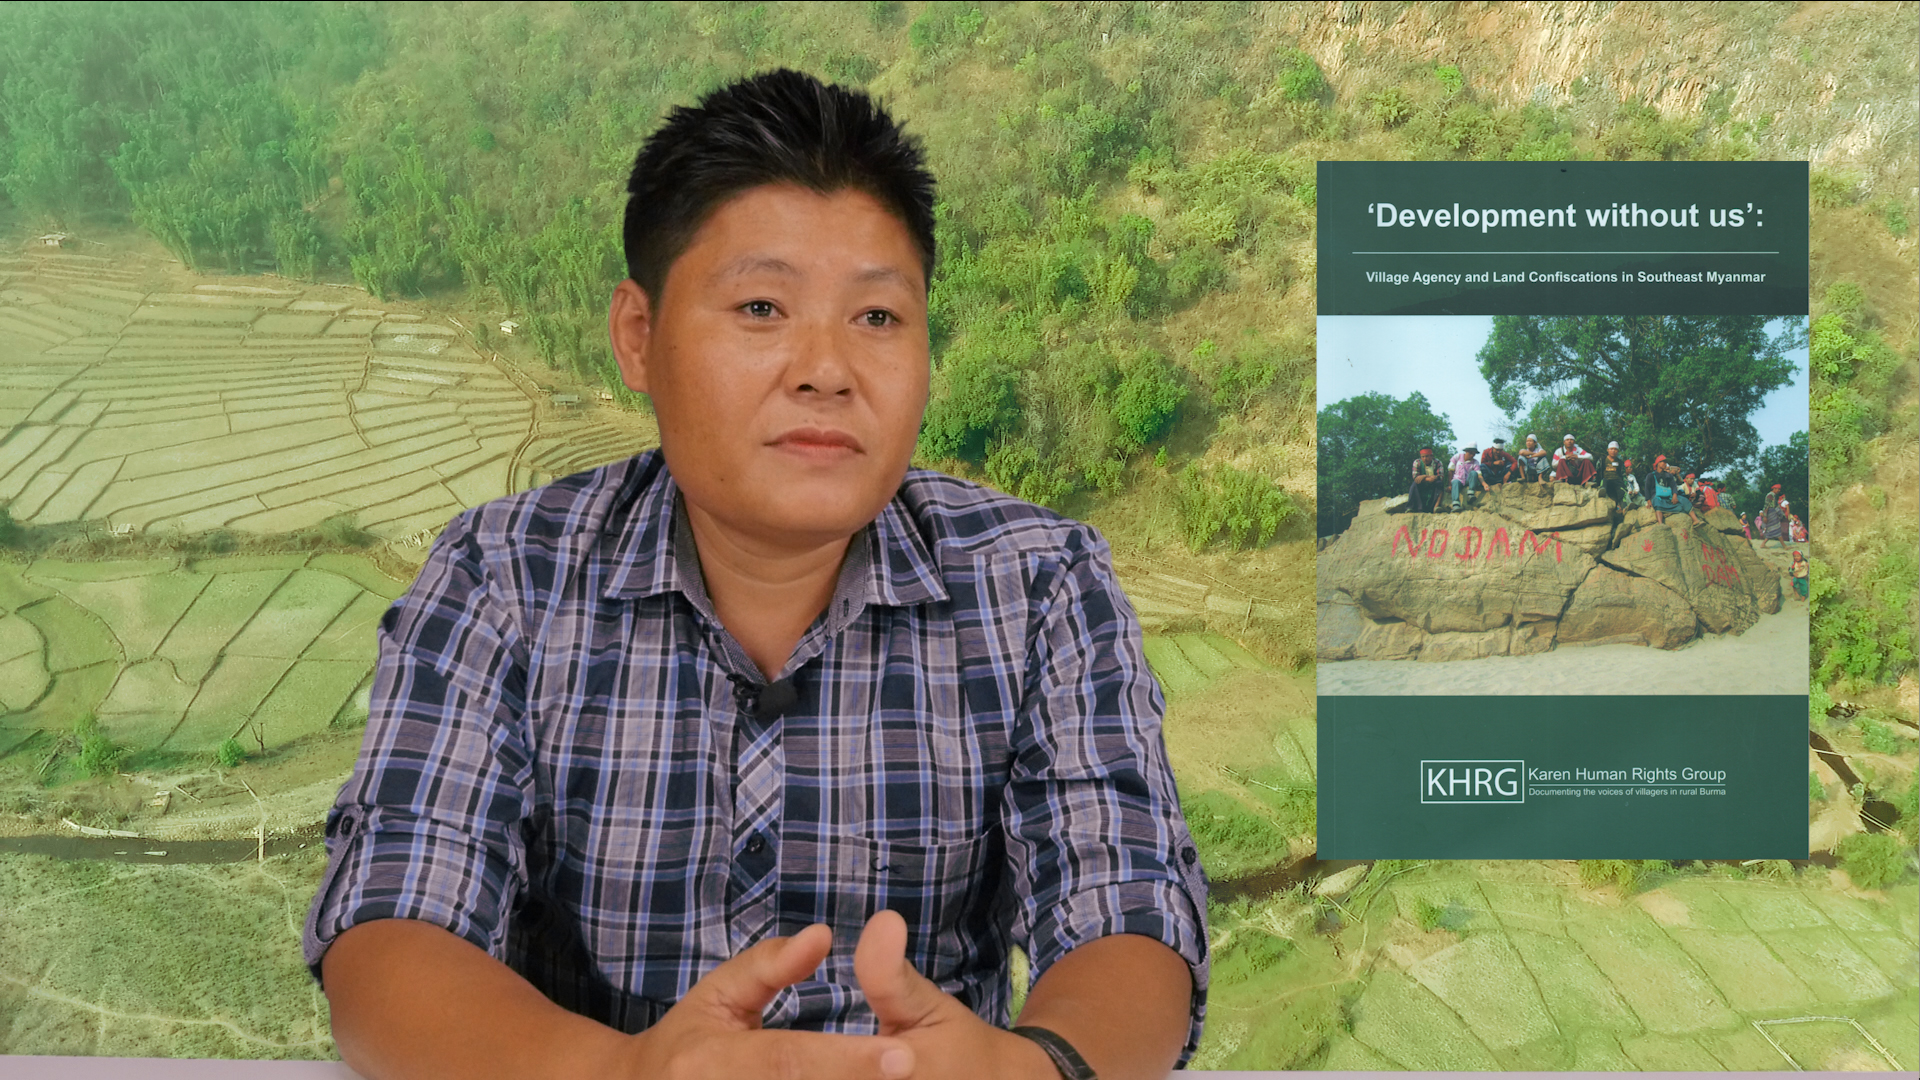 Photo of Land Confiscation and Land Grabbing Continues As Business Development Increase in Karen State